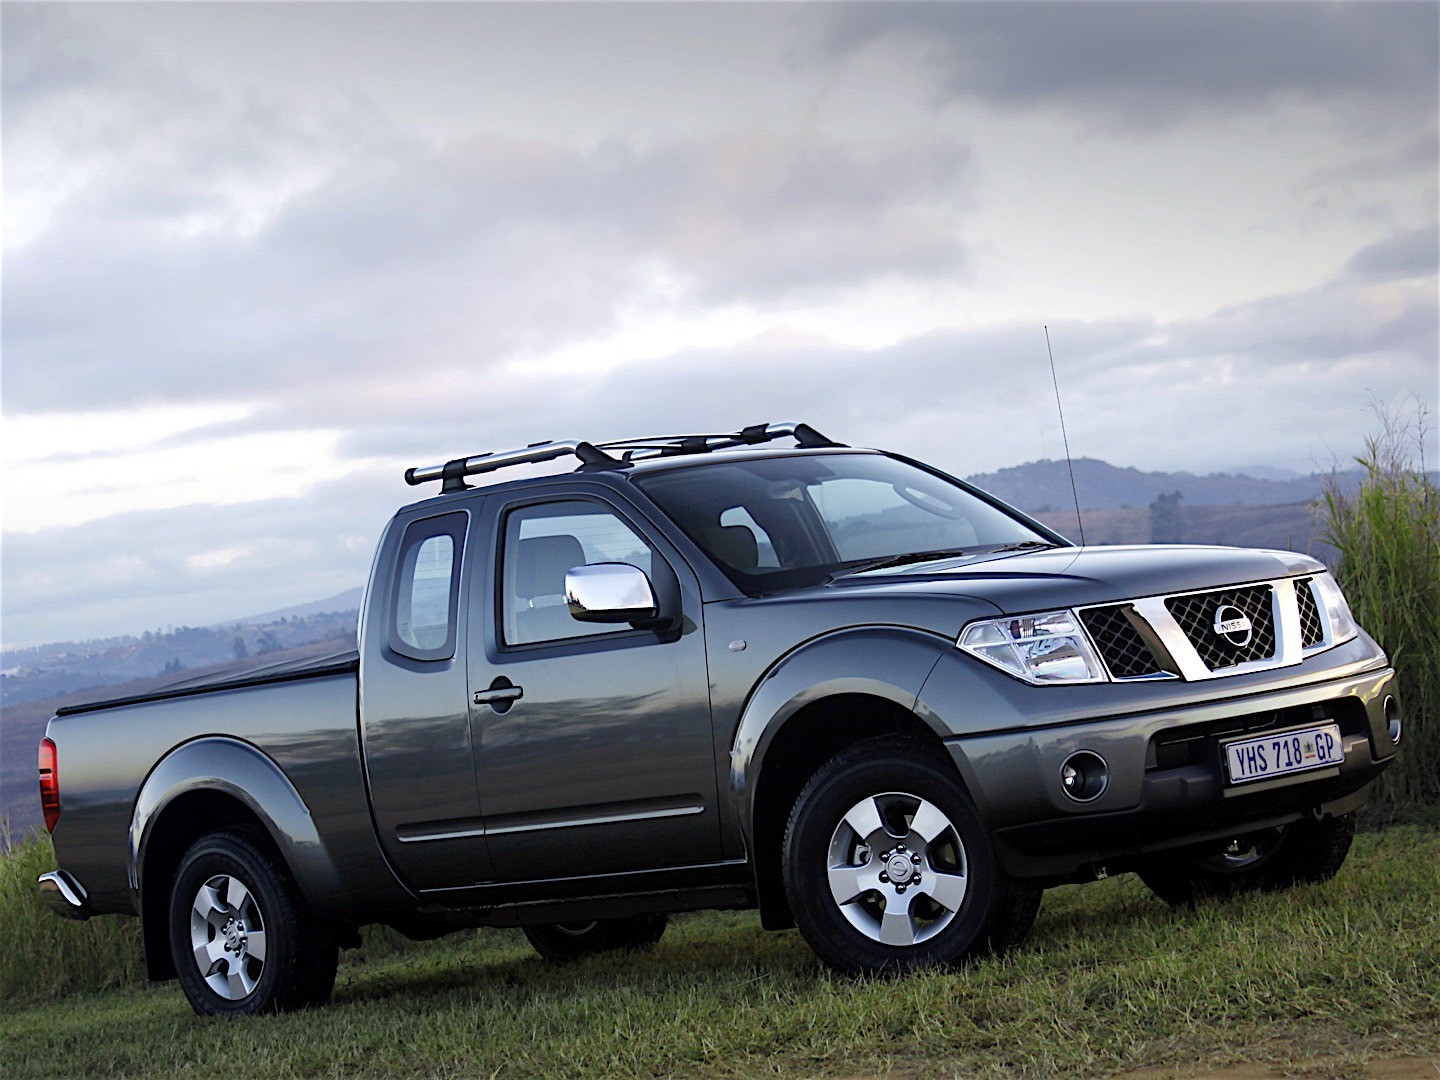 2007 nissan frontier king cab. Black Bedroom Furniture Sets. Home Design Ideas